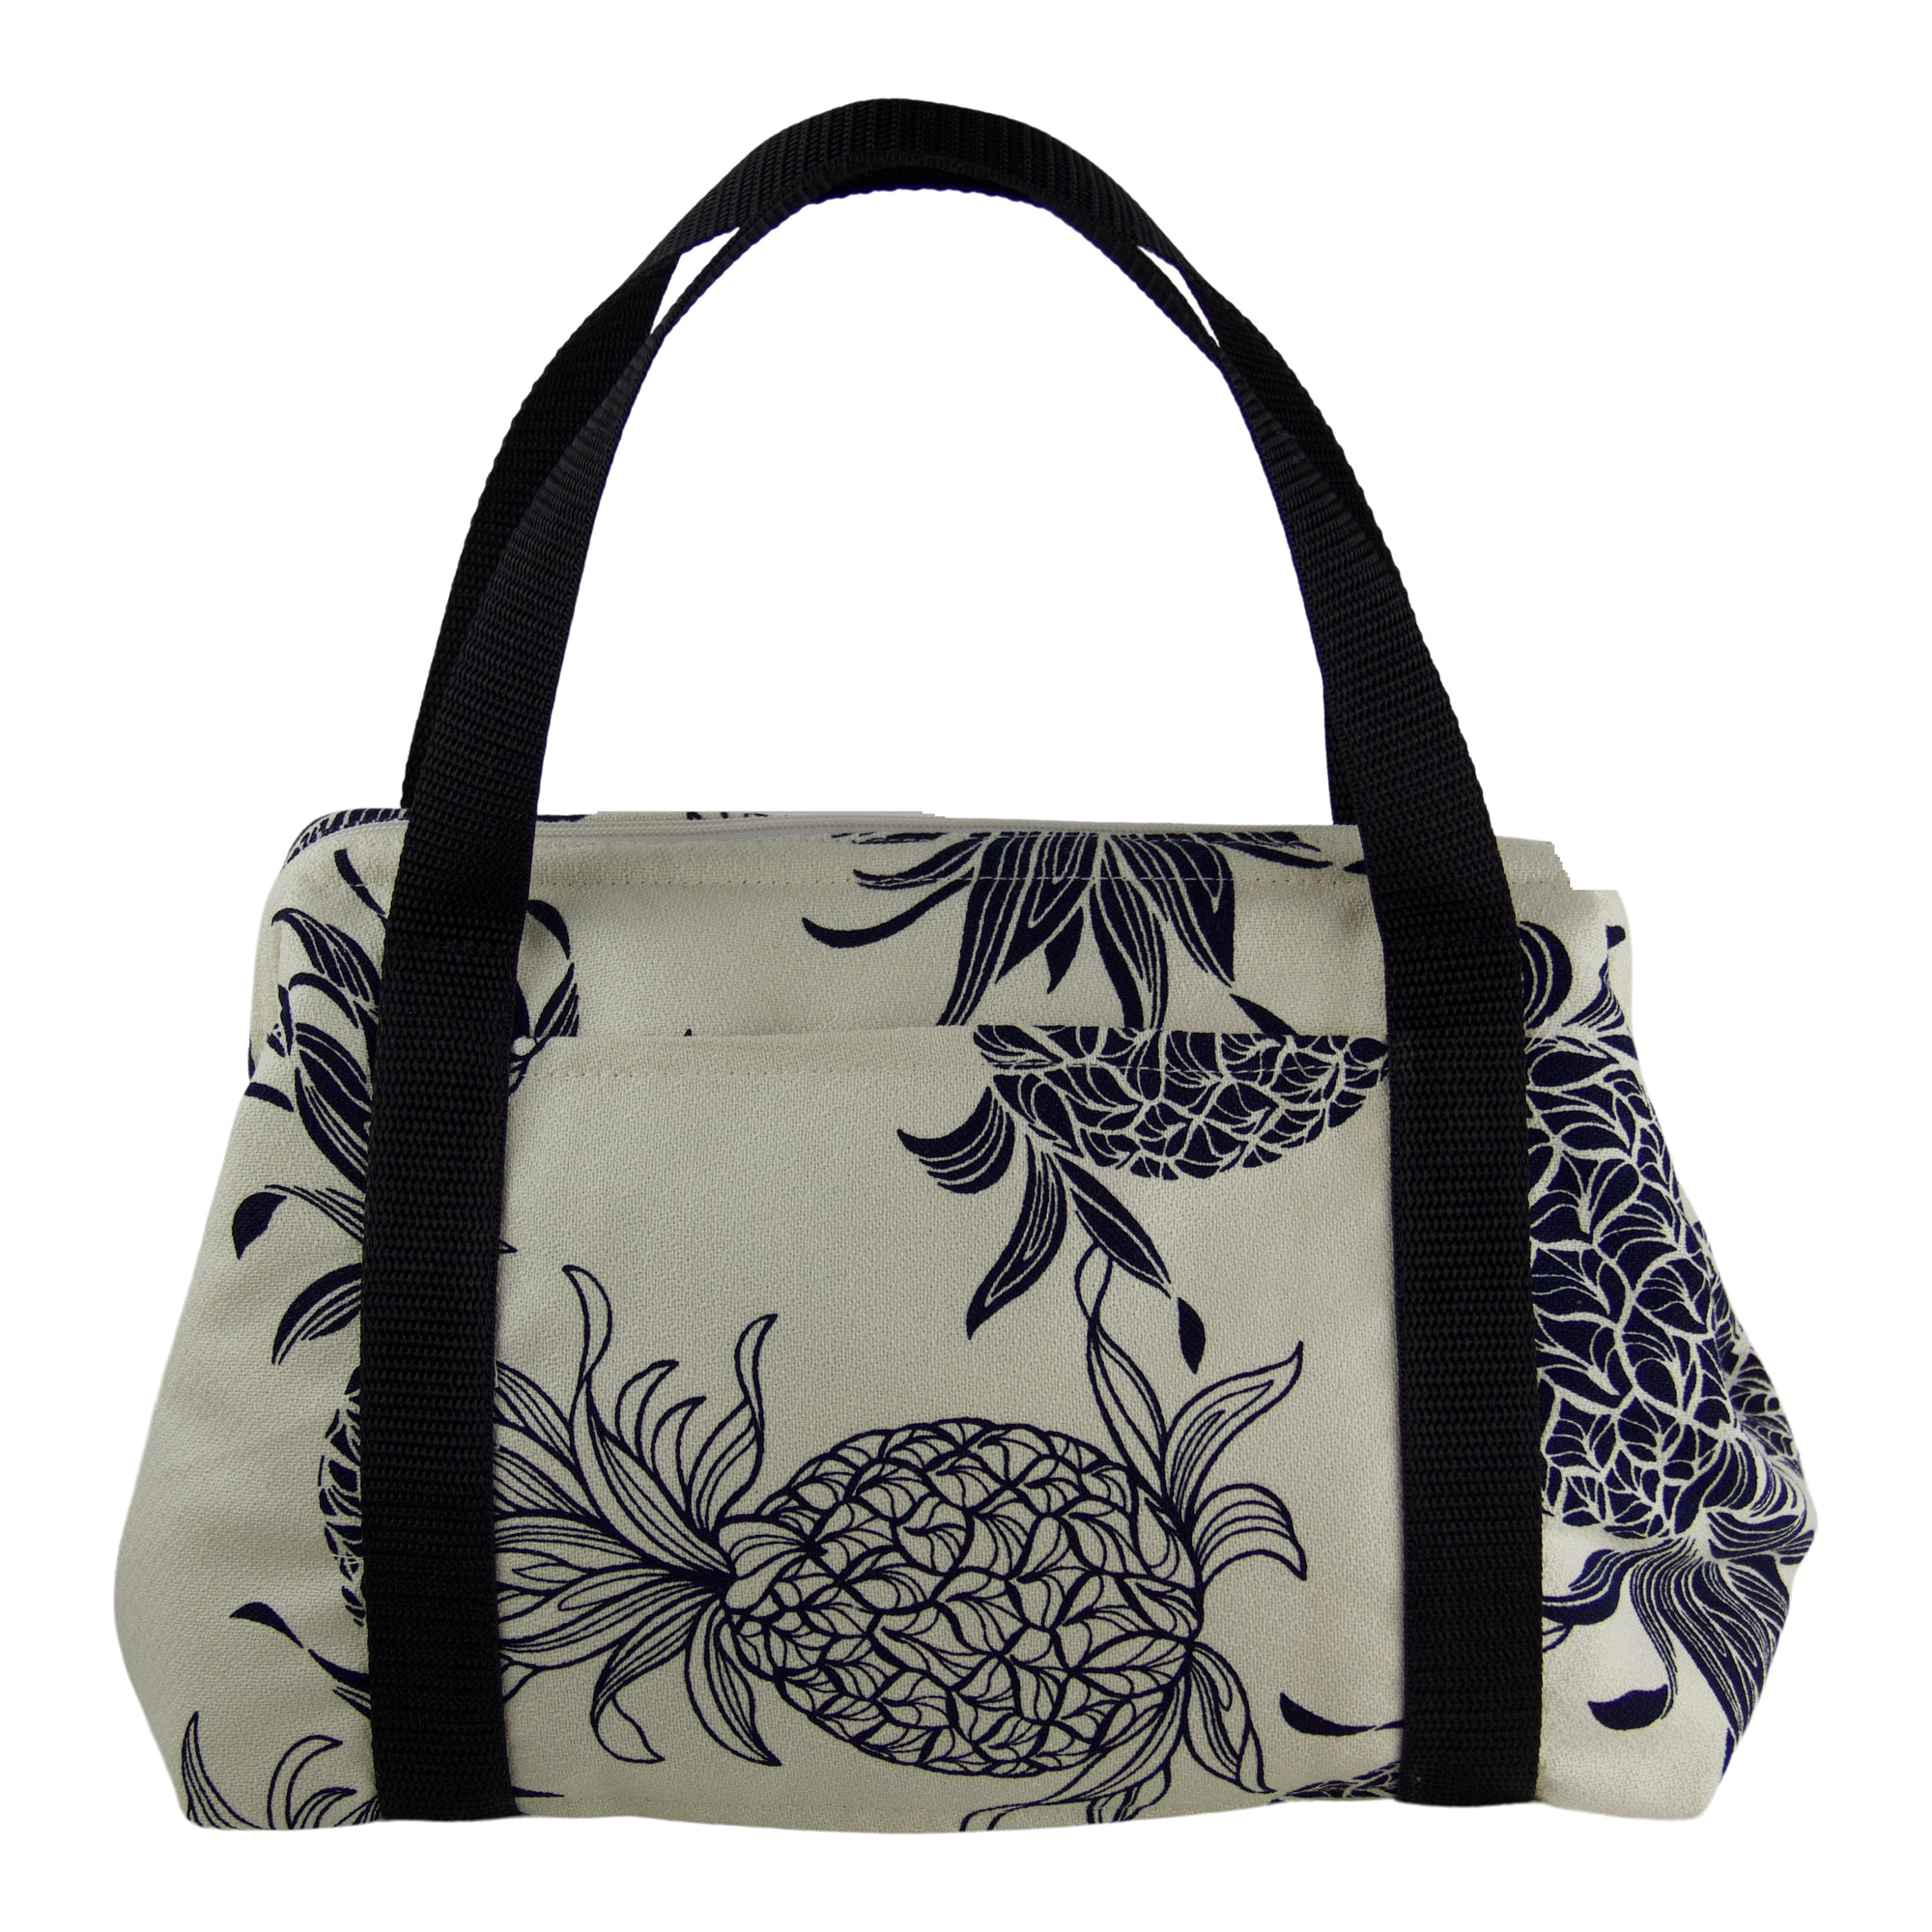 Insulated Toiletry/Lunch bag-Pineapple in Cotton Crepe